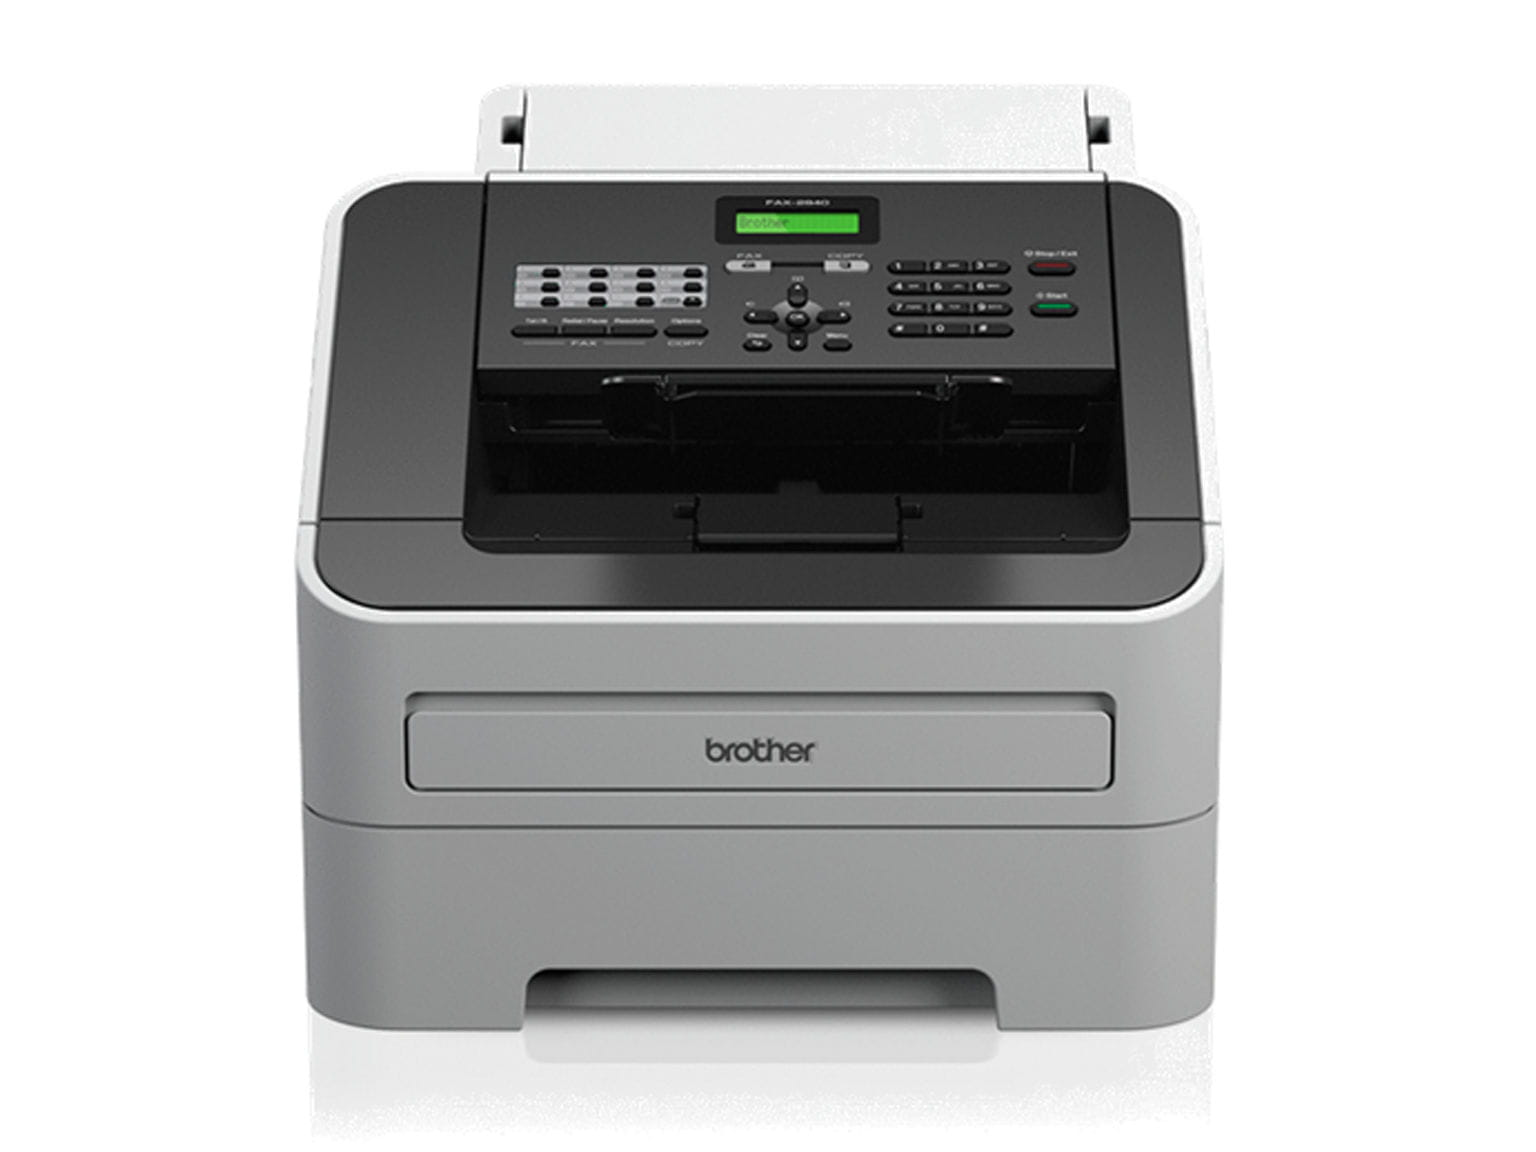 Fax-2940 Brother